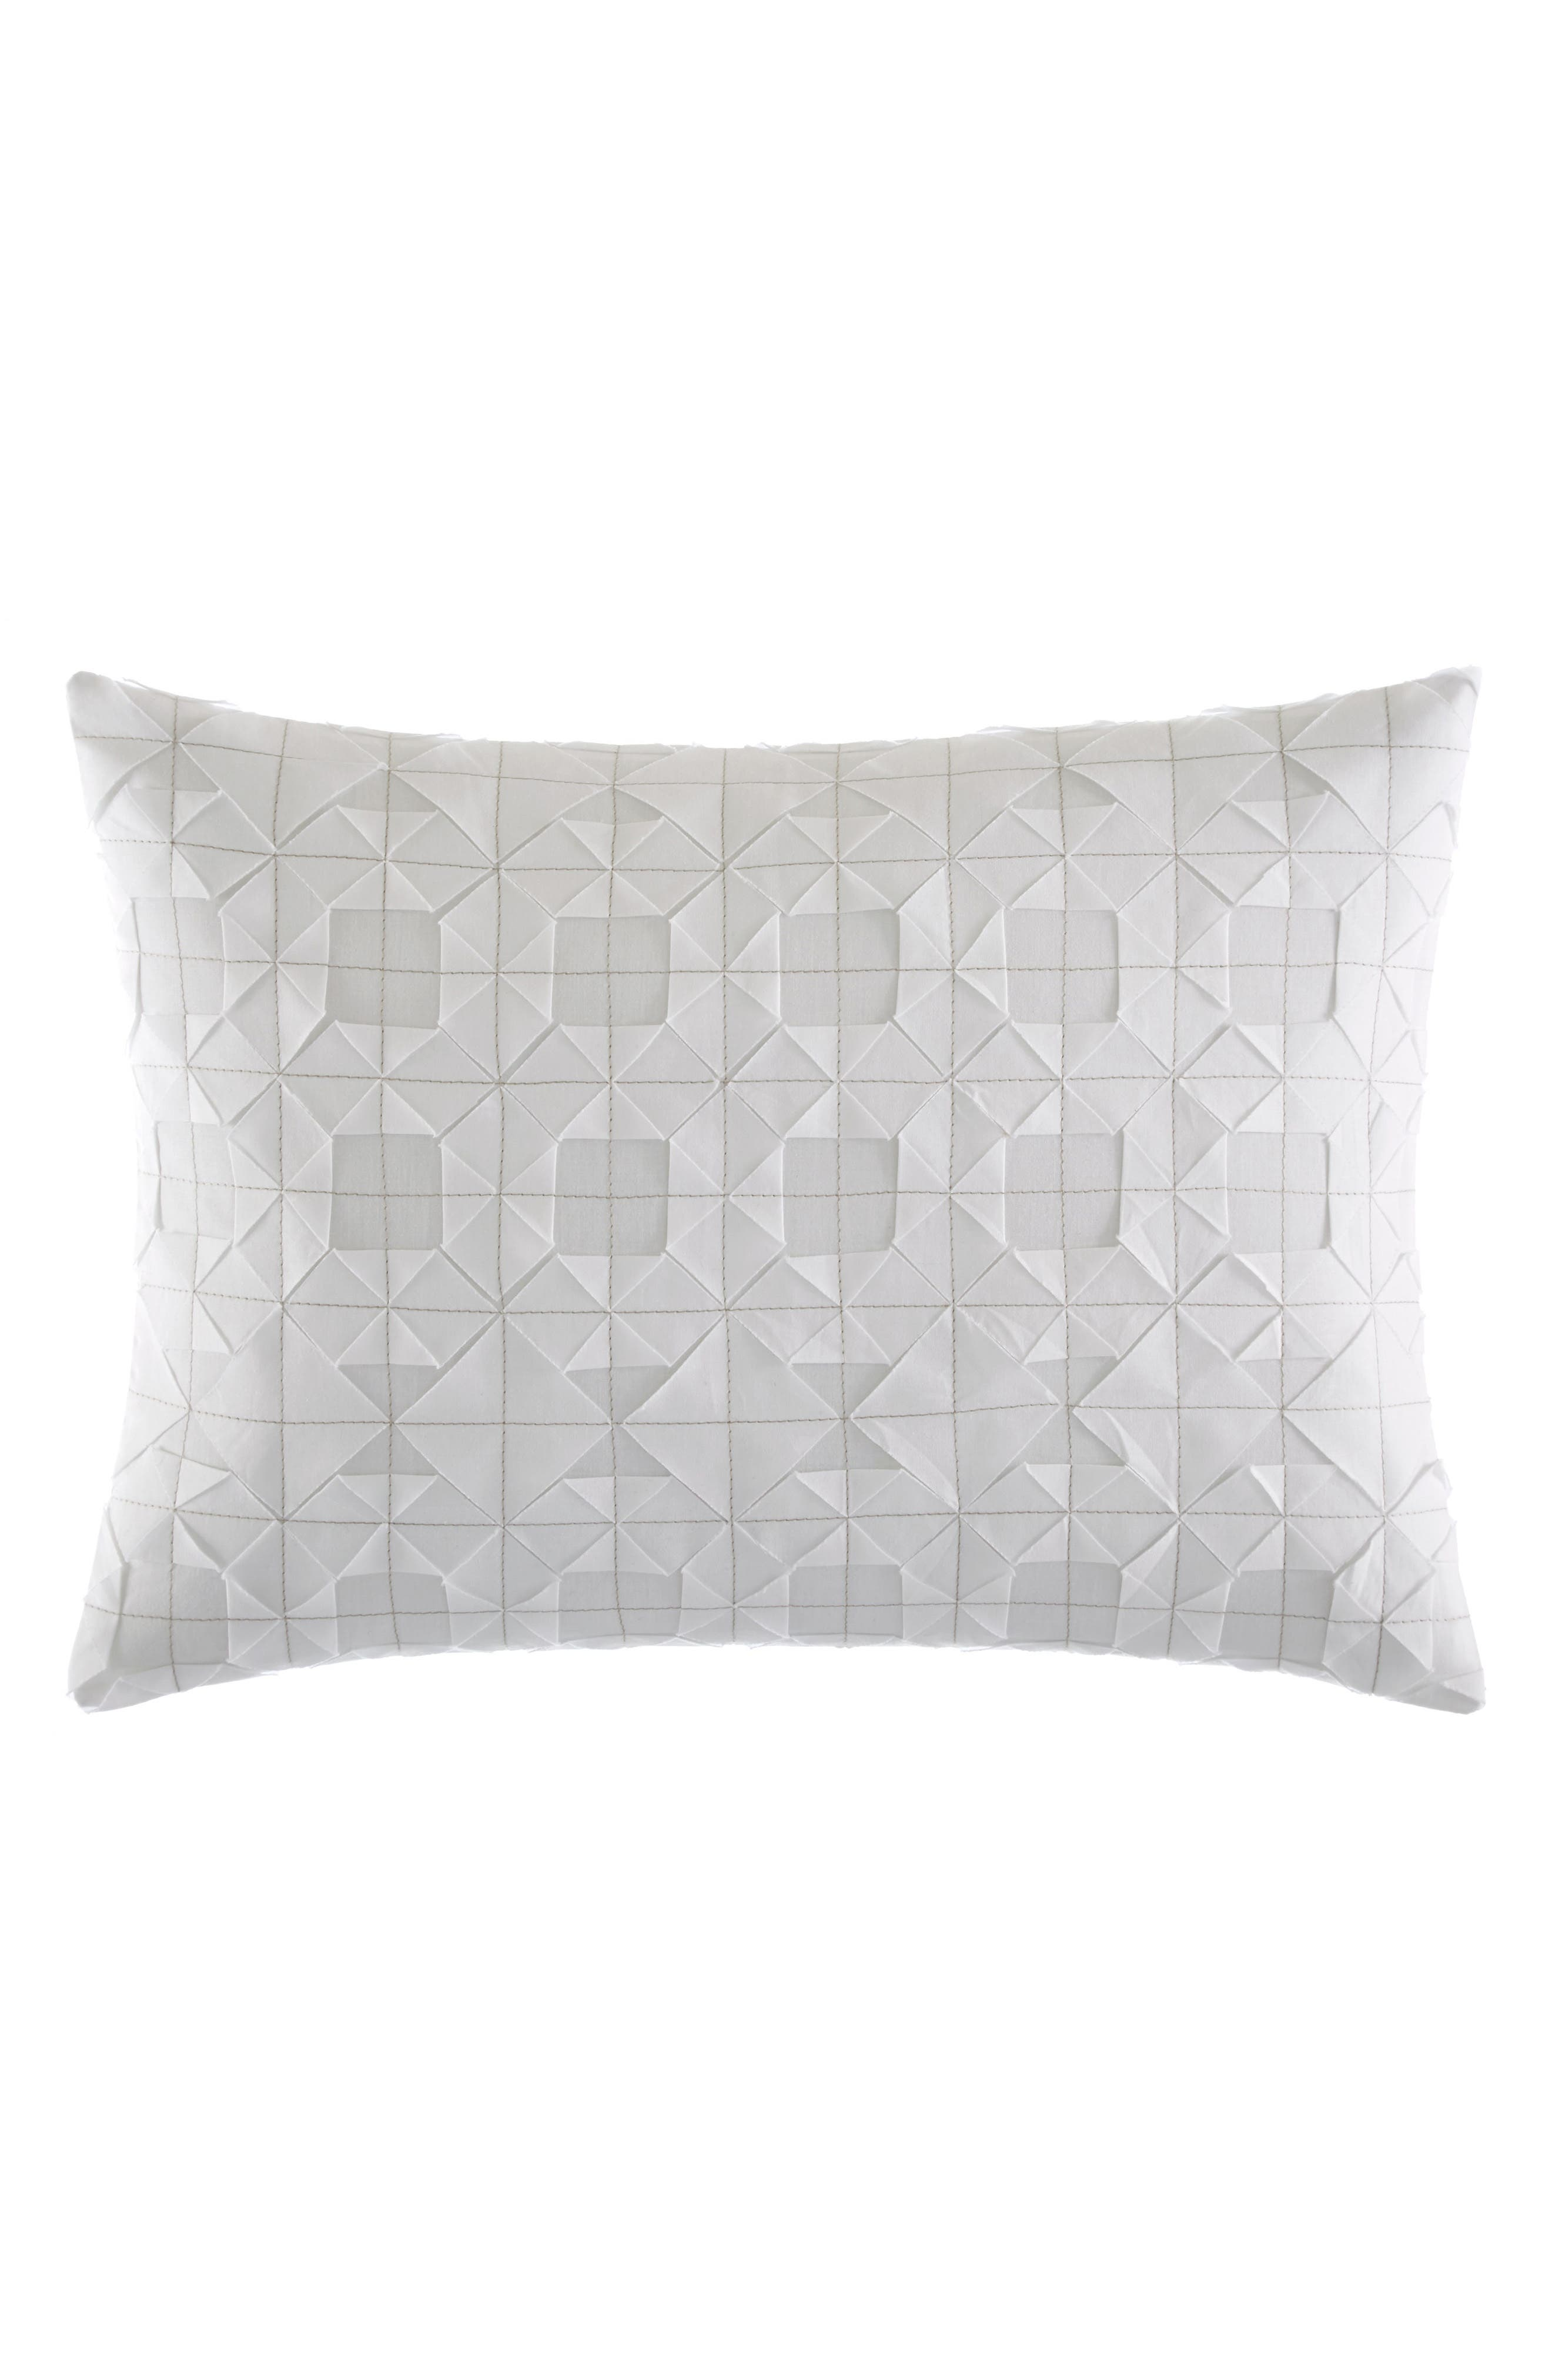 Tuille Origami Stitched Accent Pillow,                             Main thumbnail 1, color,                             115